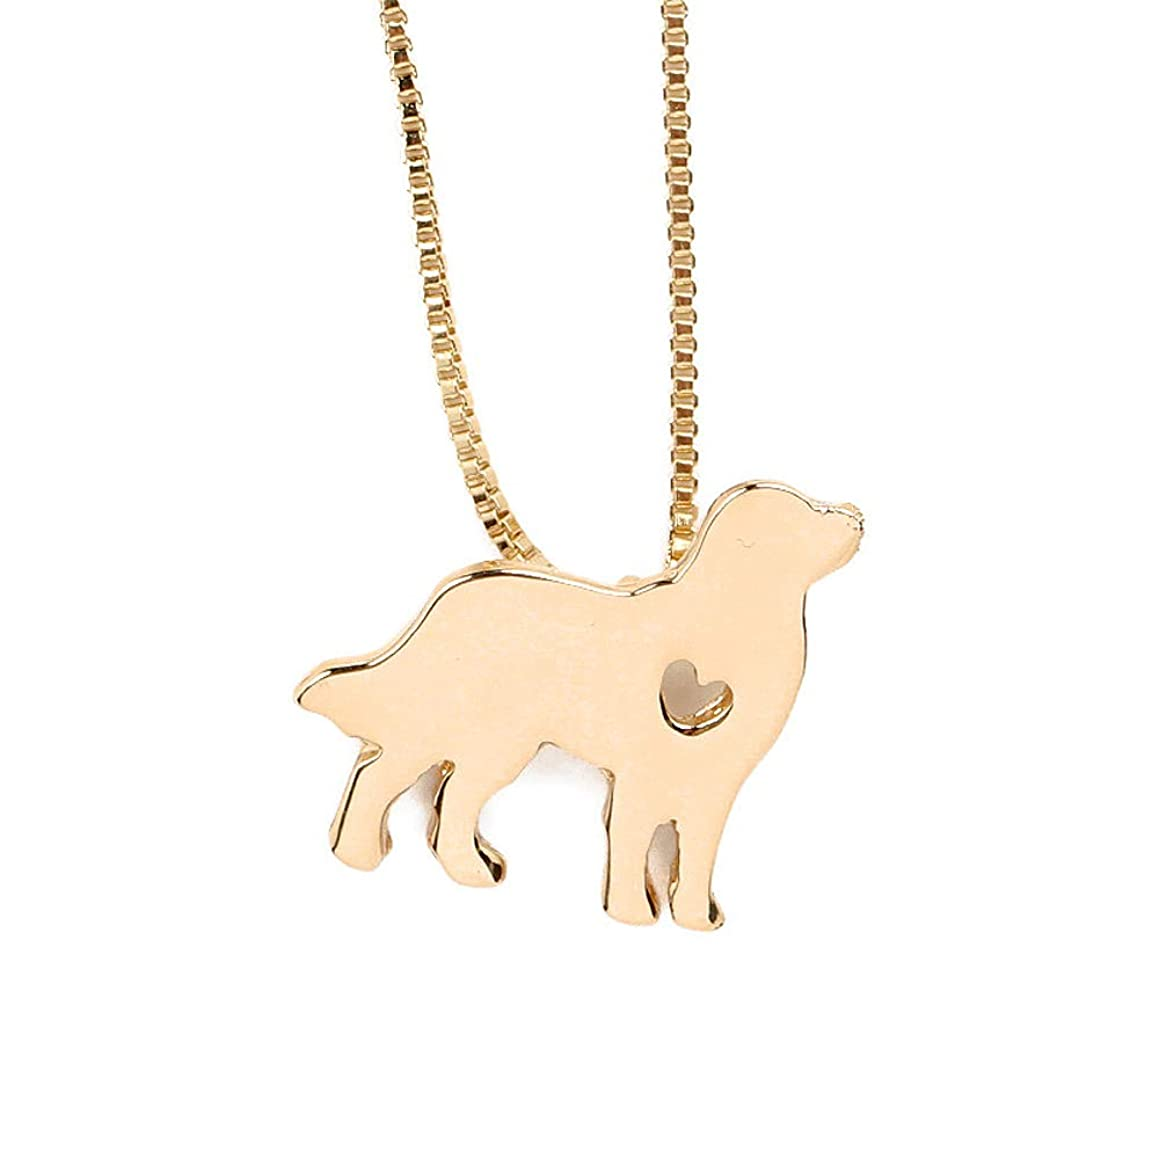 NC078 Cute Golden Retriever Dog Pet Charm Pendant Necklace